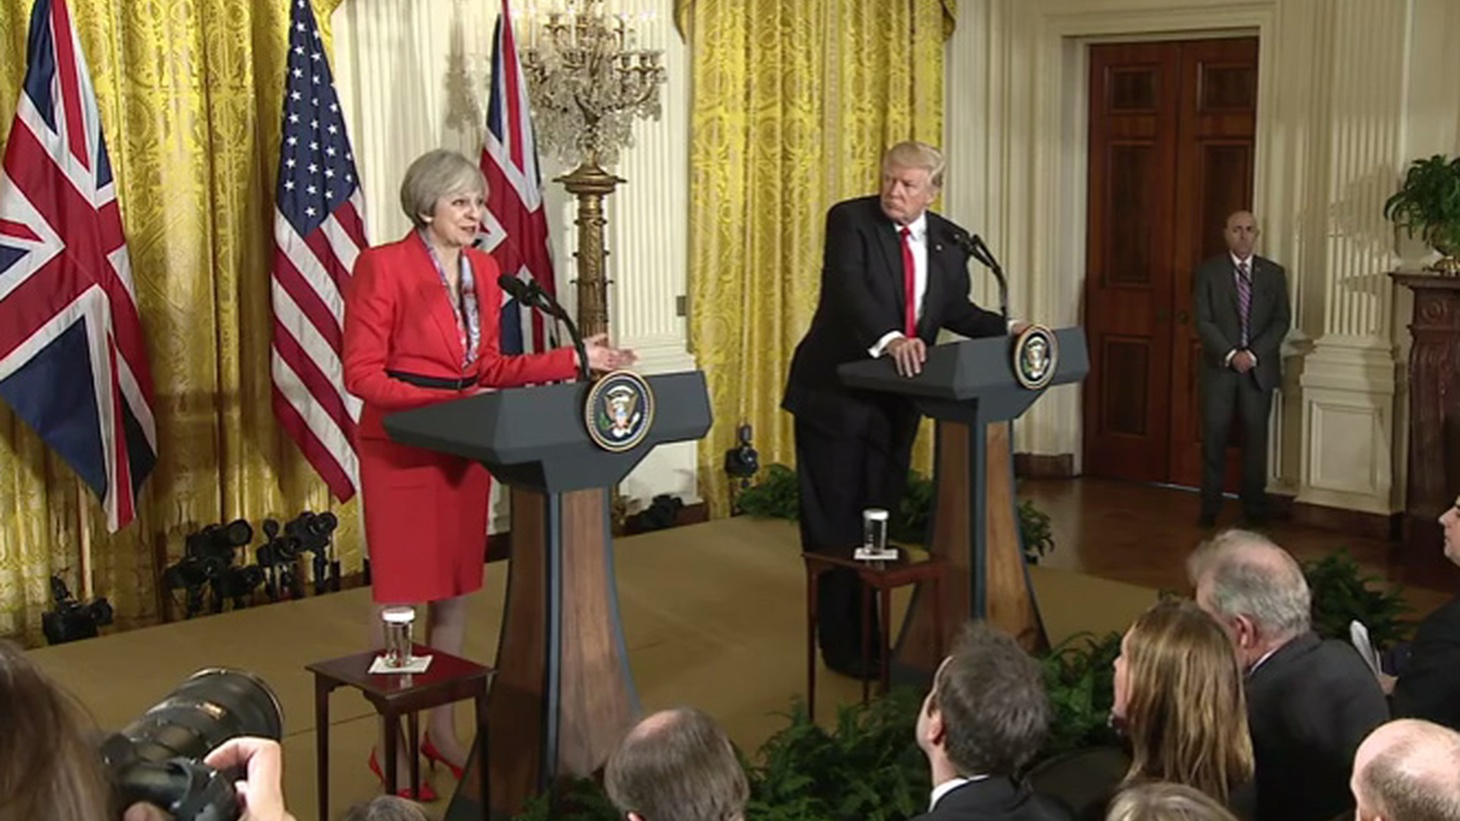 """Theresa May is the first foreign leader to sit down with Donald Trump as Commander in Chief. The British Prime Minister says it's to build on the """"special relationship"""" between the US and the UK. There's even talk of a new Trans-Atlantic trade deal. But how's that going to flyin a post-Brexit world, with a White House bent on """"buy American, hire American?"""" Guest host Barbara Bogaev looks at how the US withdrawing from global treaties and embracing Russia complicates the relationship."""